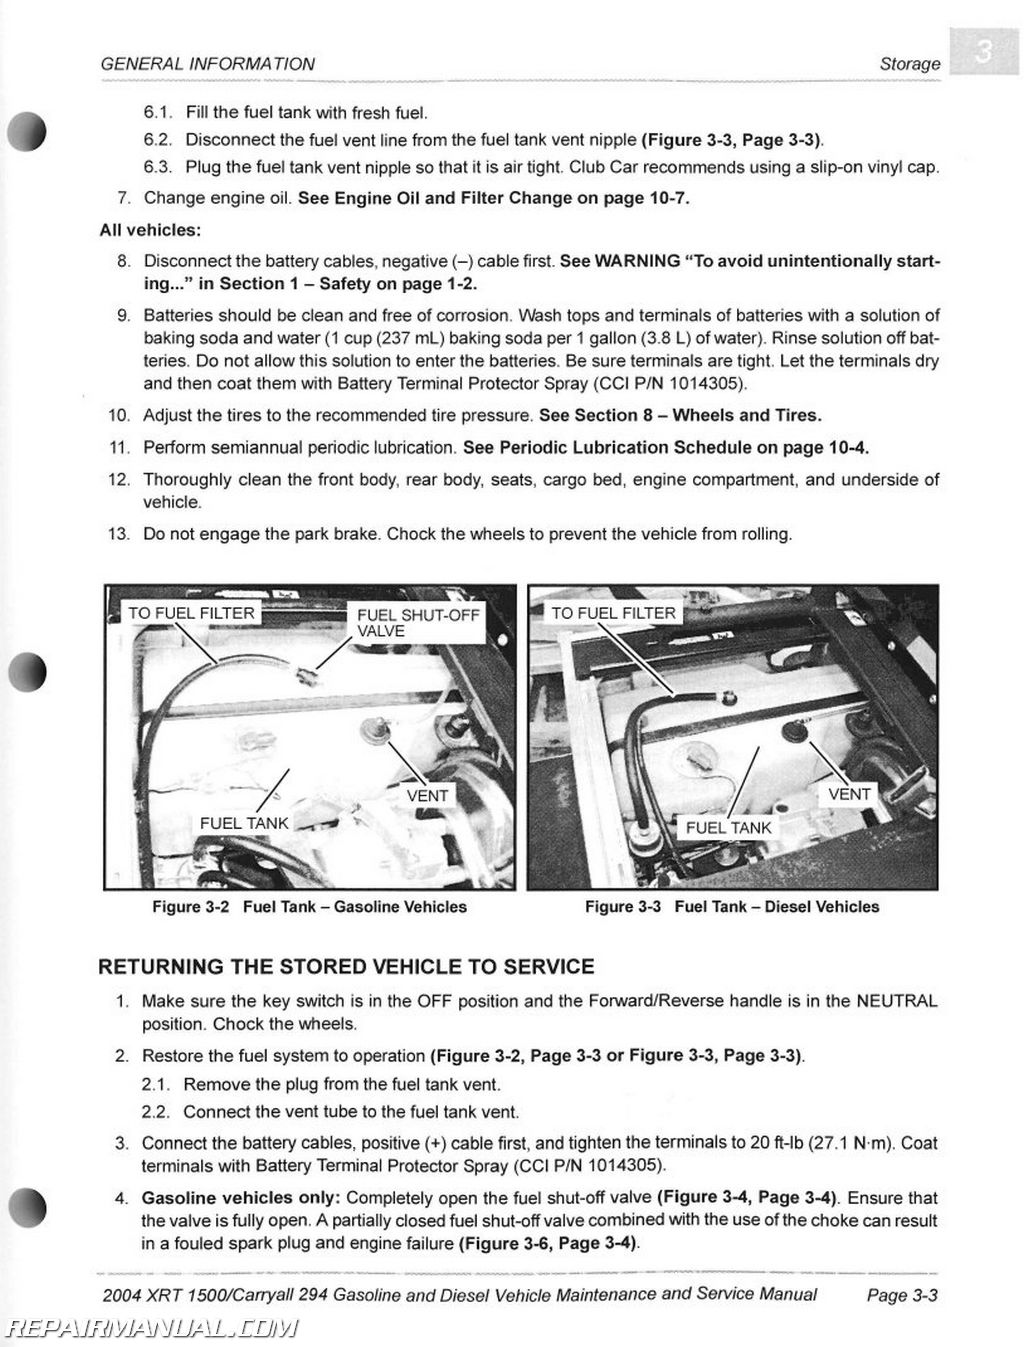 automotive wiring diagrams manual electric scooter throttle diagram 2004 club car carryall 294 and xrt 1500 maintenance